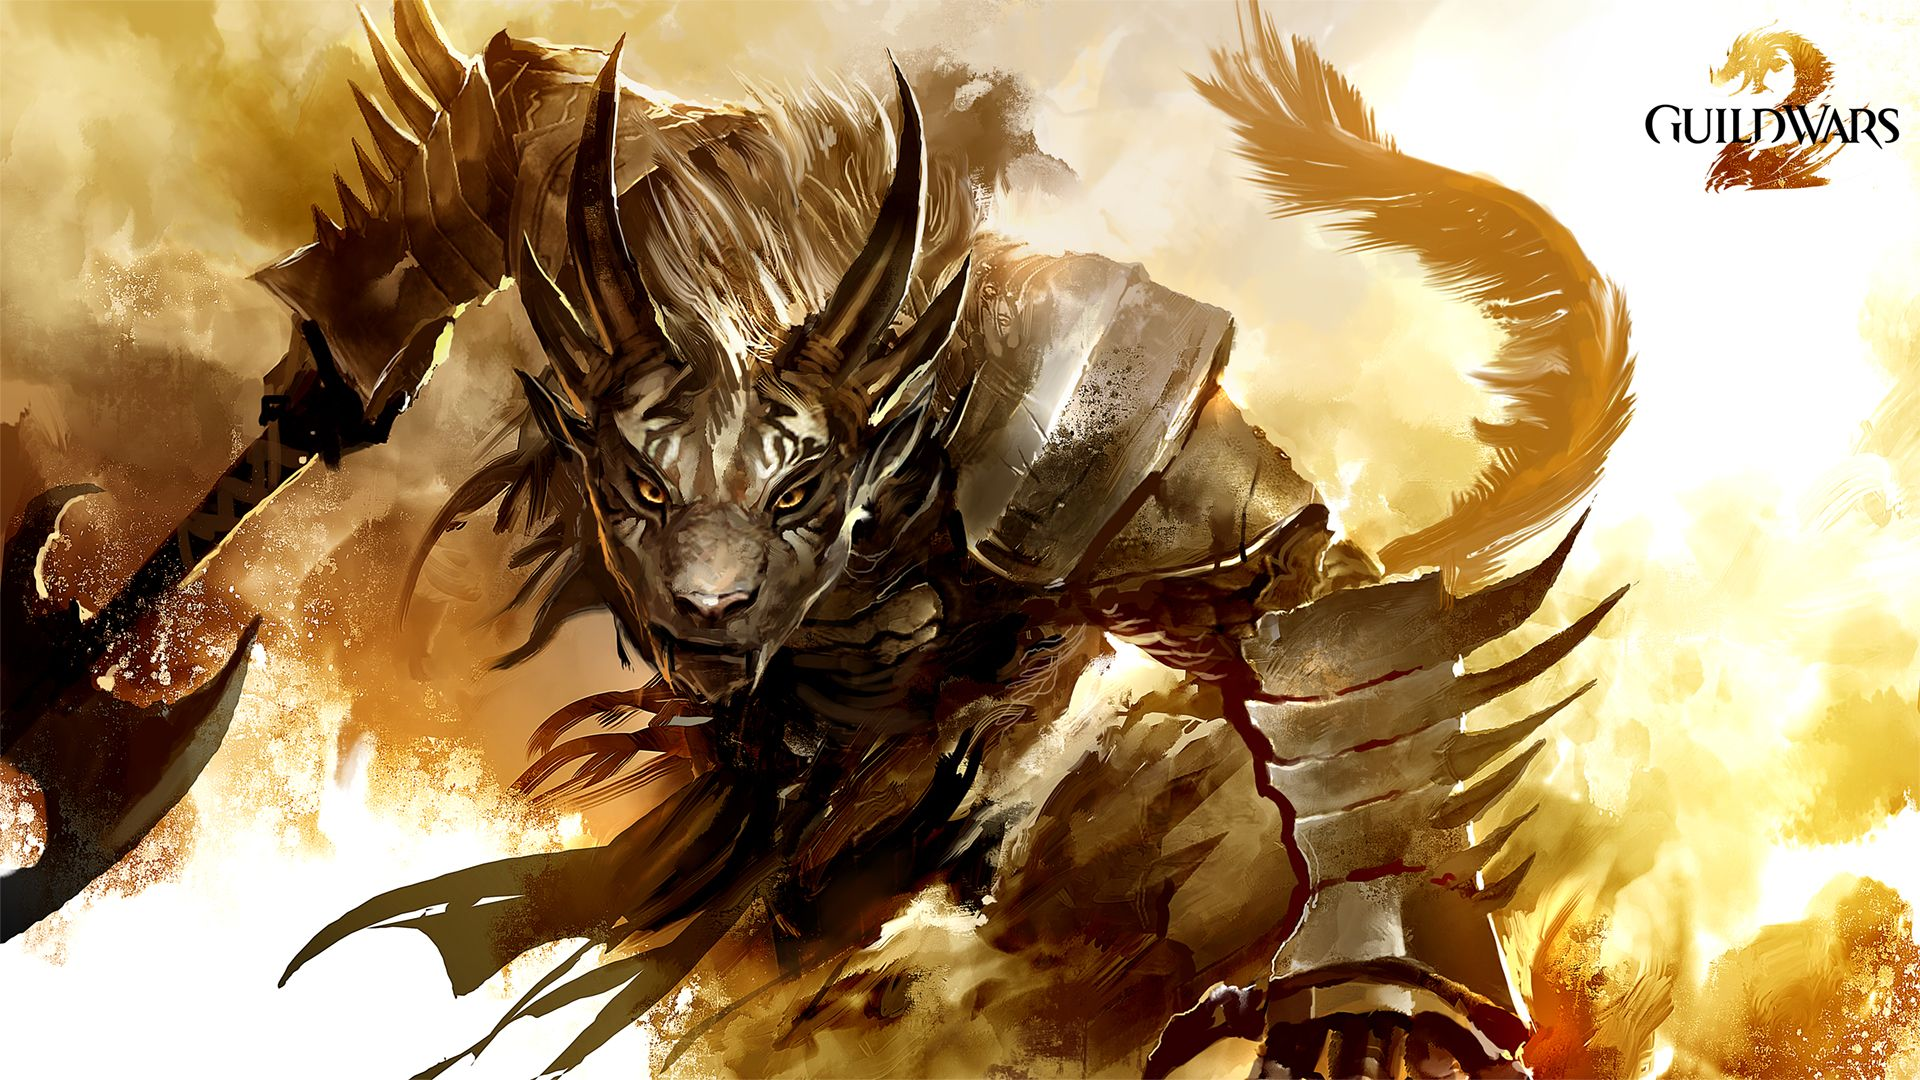 Guild Wars 2 Badass Charr Warrior 1920x1080 Need Iphone 6s Plus Wallpaper Background For Iphone6splus Fo Guild Wars Warriors Wallpaper Guild Wars 2